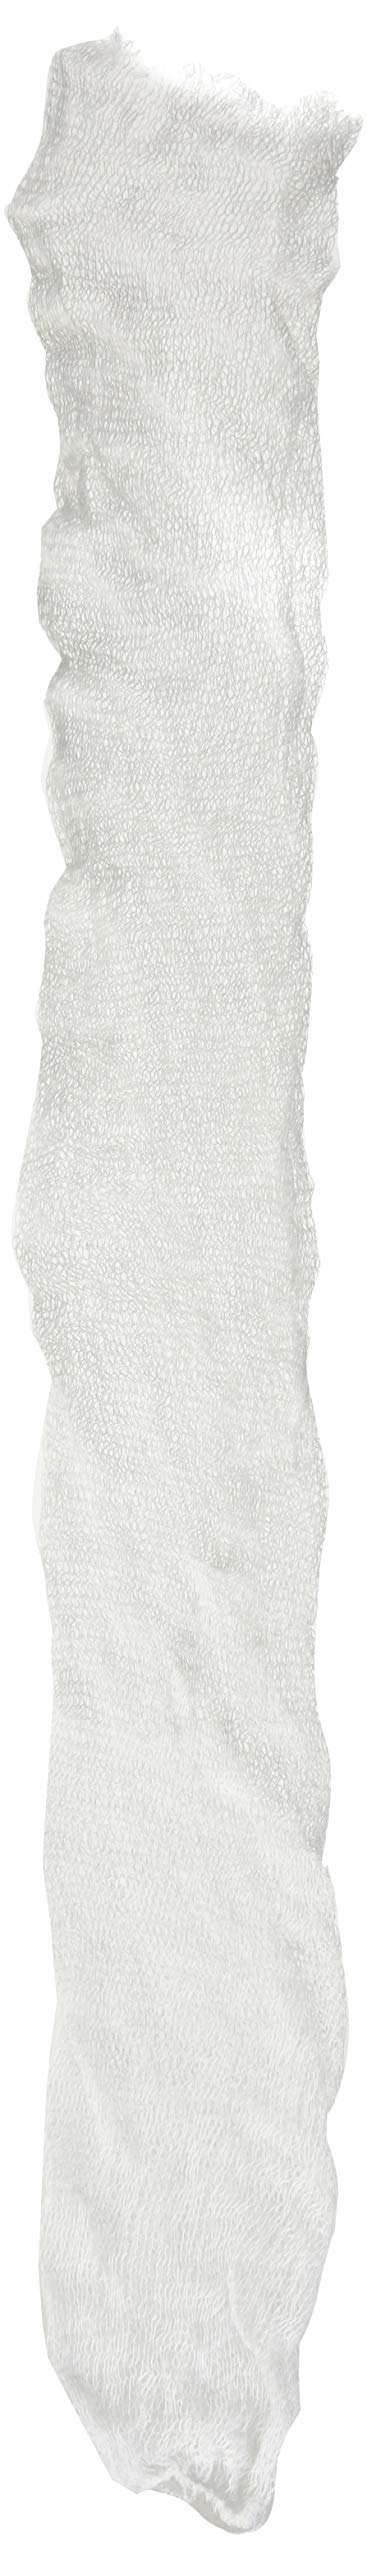 UltraSource Polyester Stockinette, 16 lb. - 18 lb. Capacity, 36'' (Pack of 100)